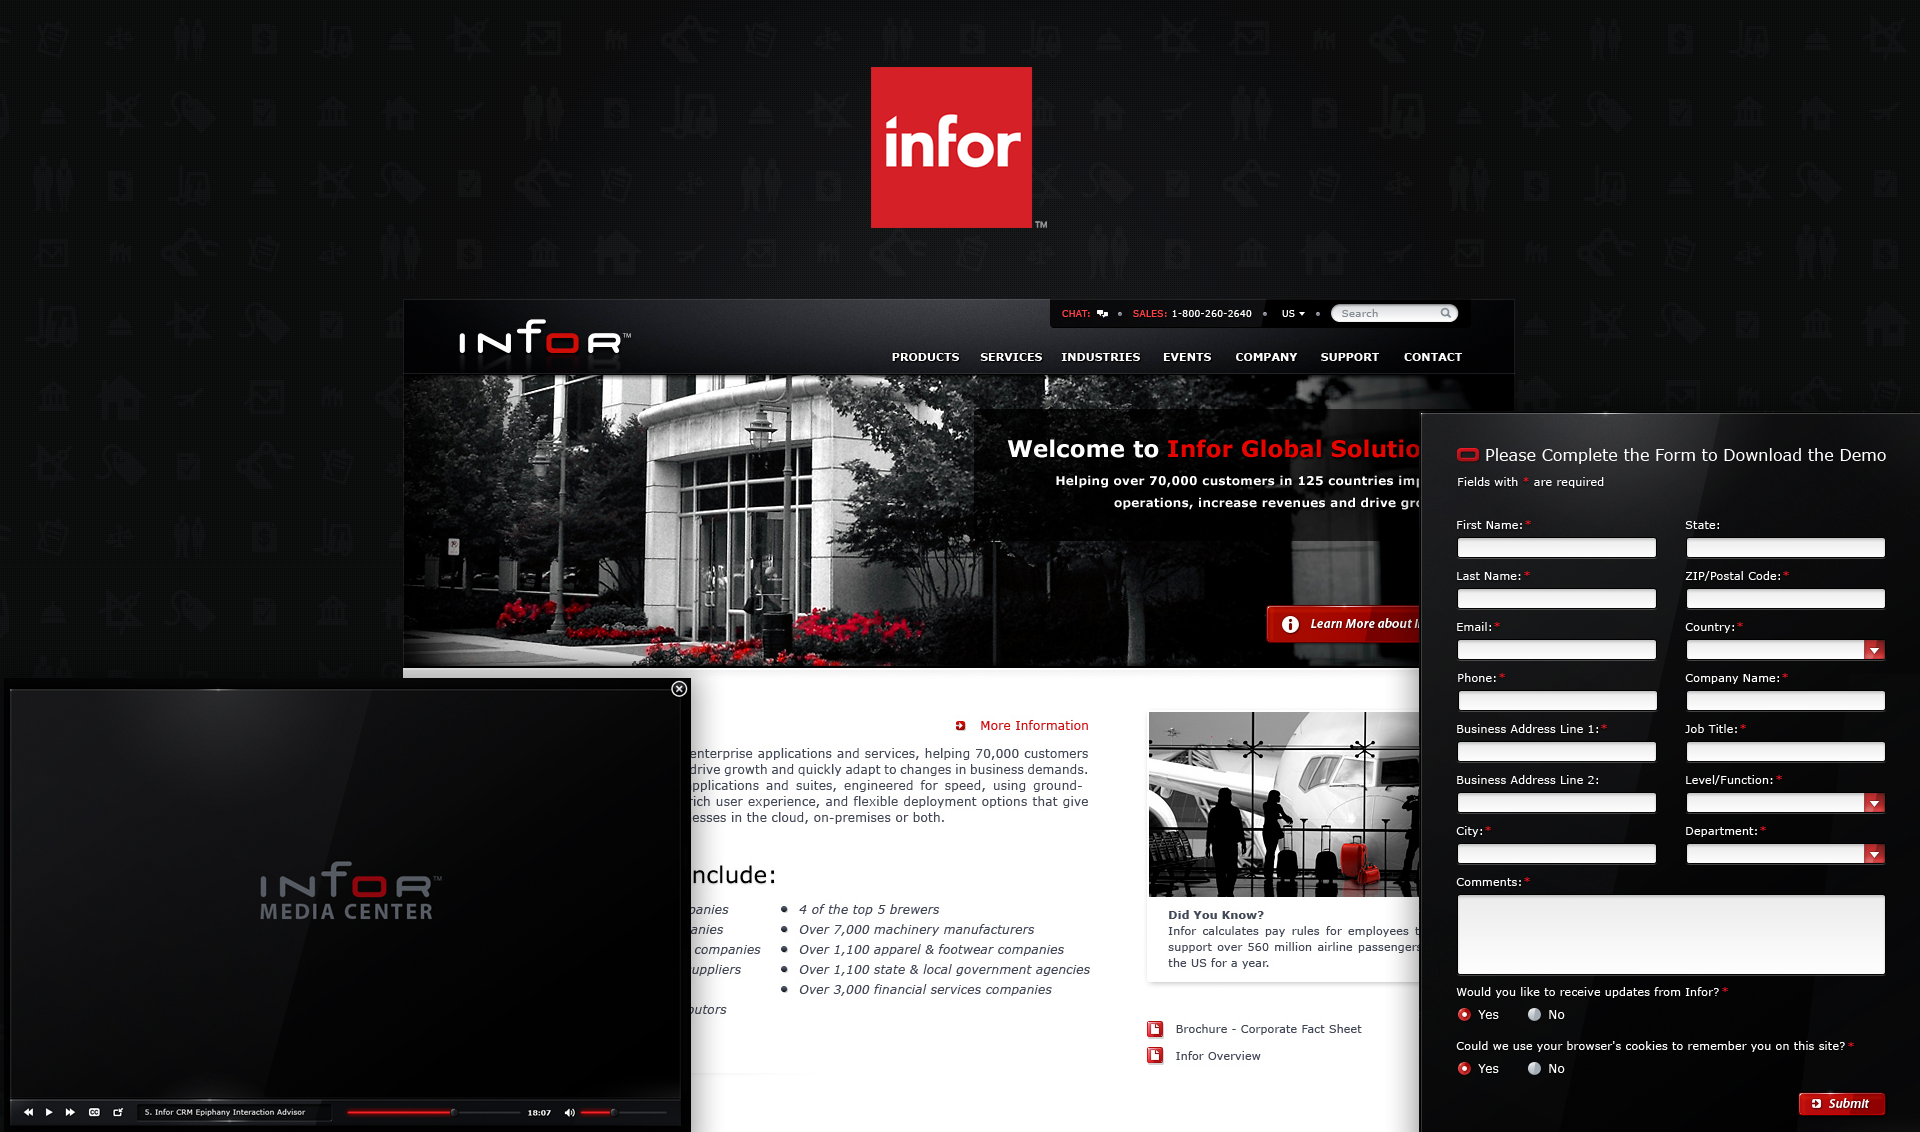 Infor.com  Website Design  The Skins Factory was given the task of completely overhauling the visual user experience & interaction design for the Infor.com website. By utilizing design cues we established in the user interface development of Infor's flagship suite of applications, Infor10, The Skins Factory was able to expand upon our forward-thinking design language to create a dynamic experience while maintaining visual consistency.